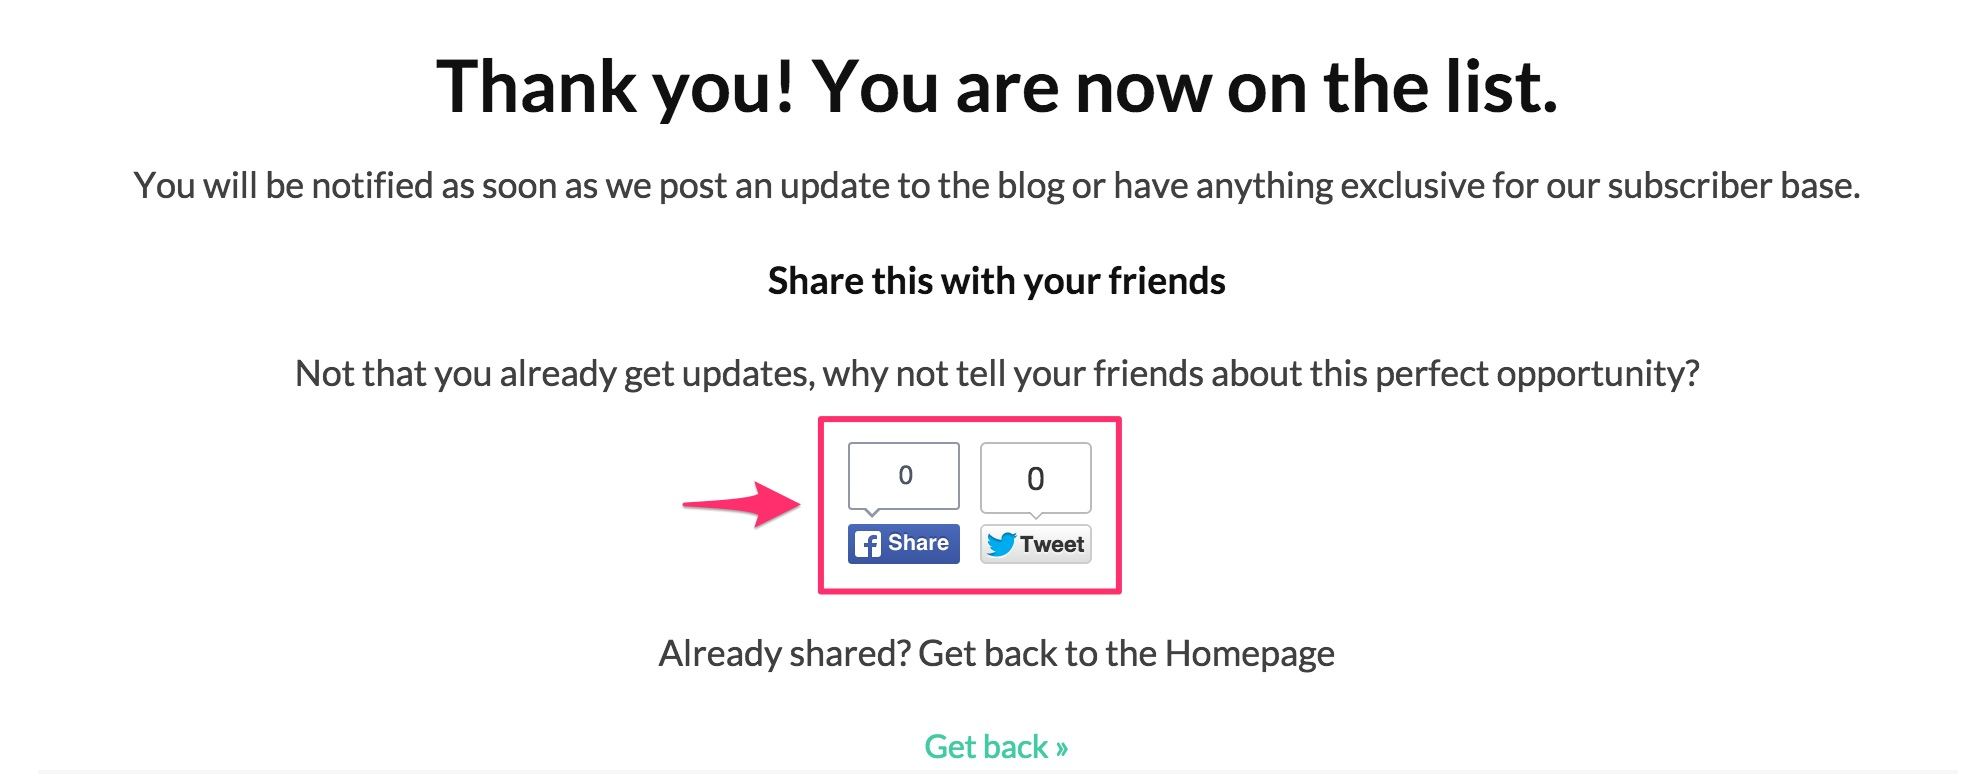 _images/thank-you-page-share.jpg